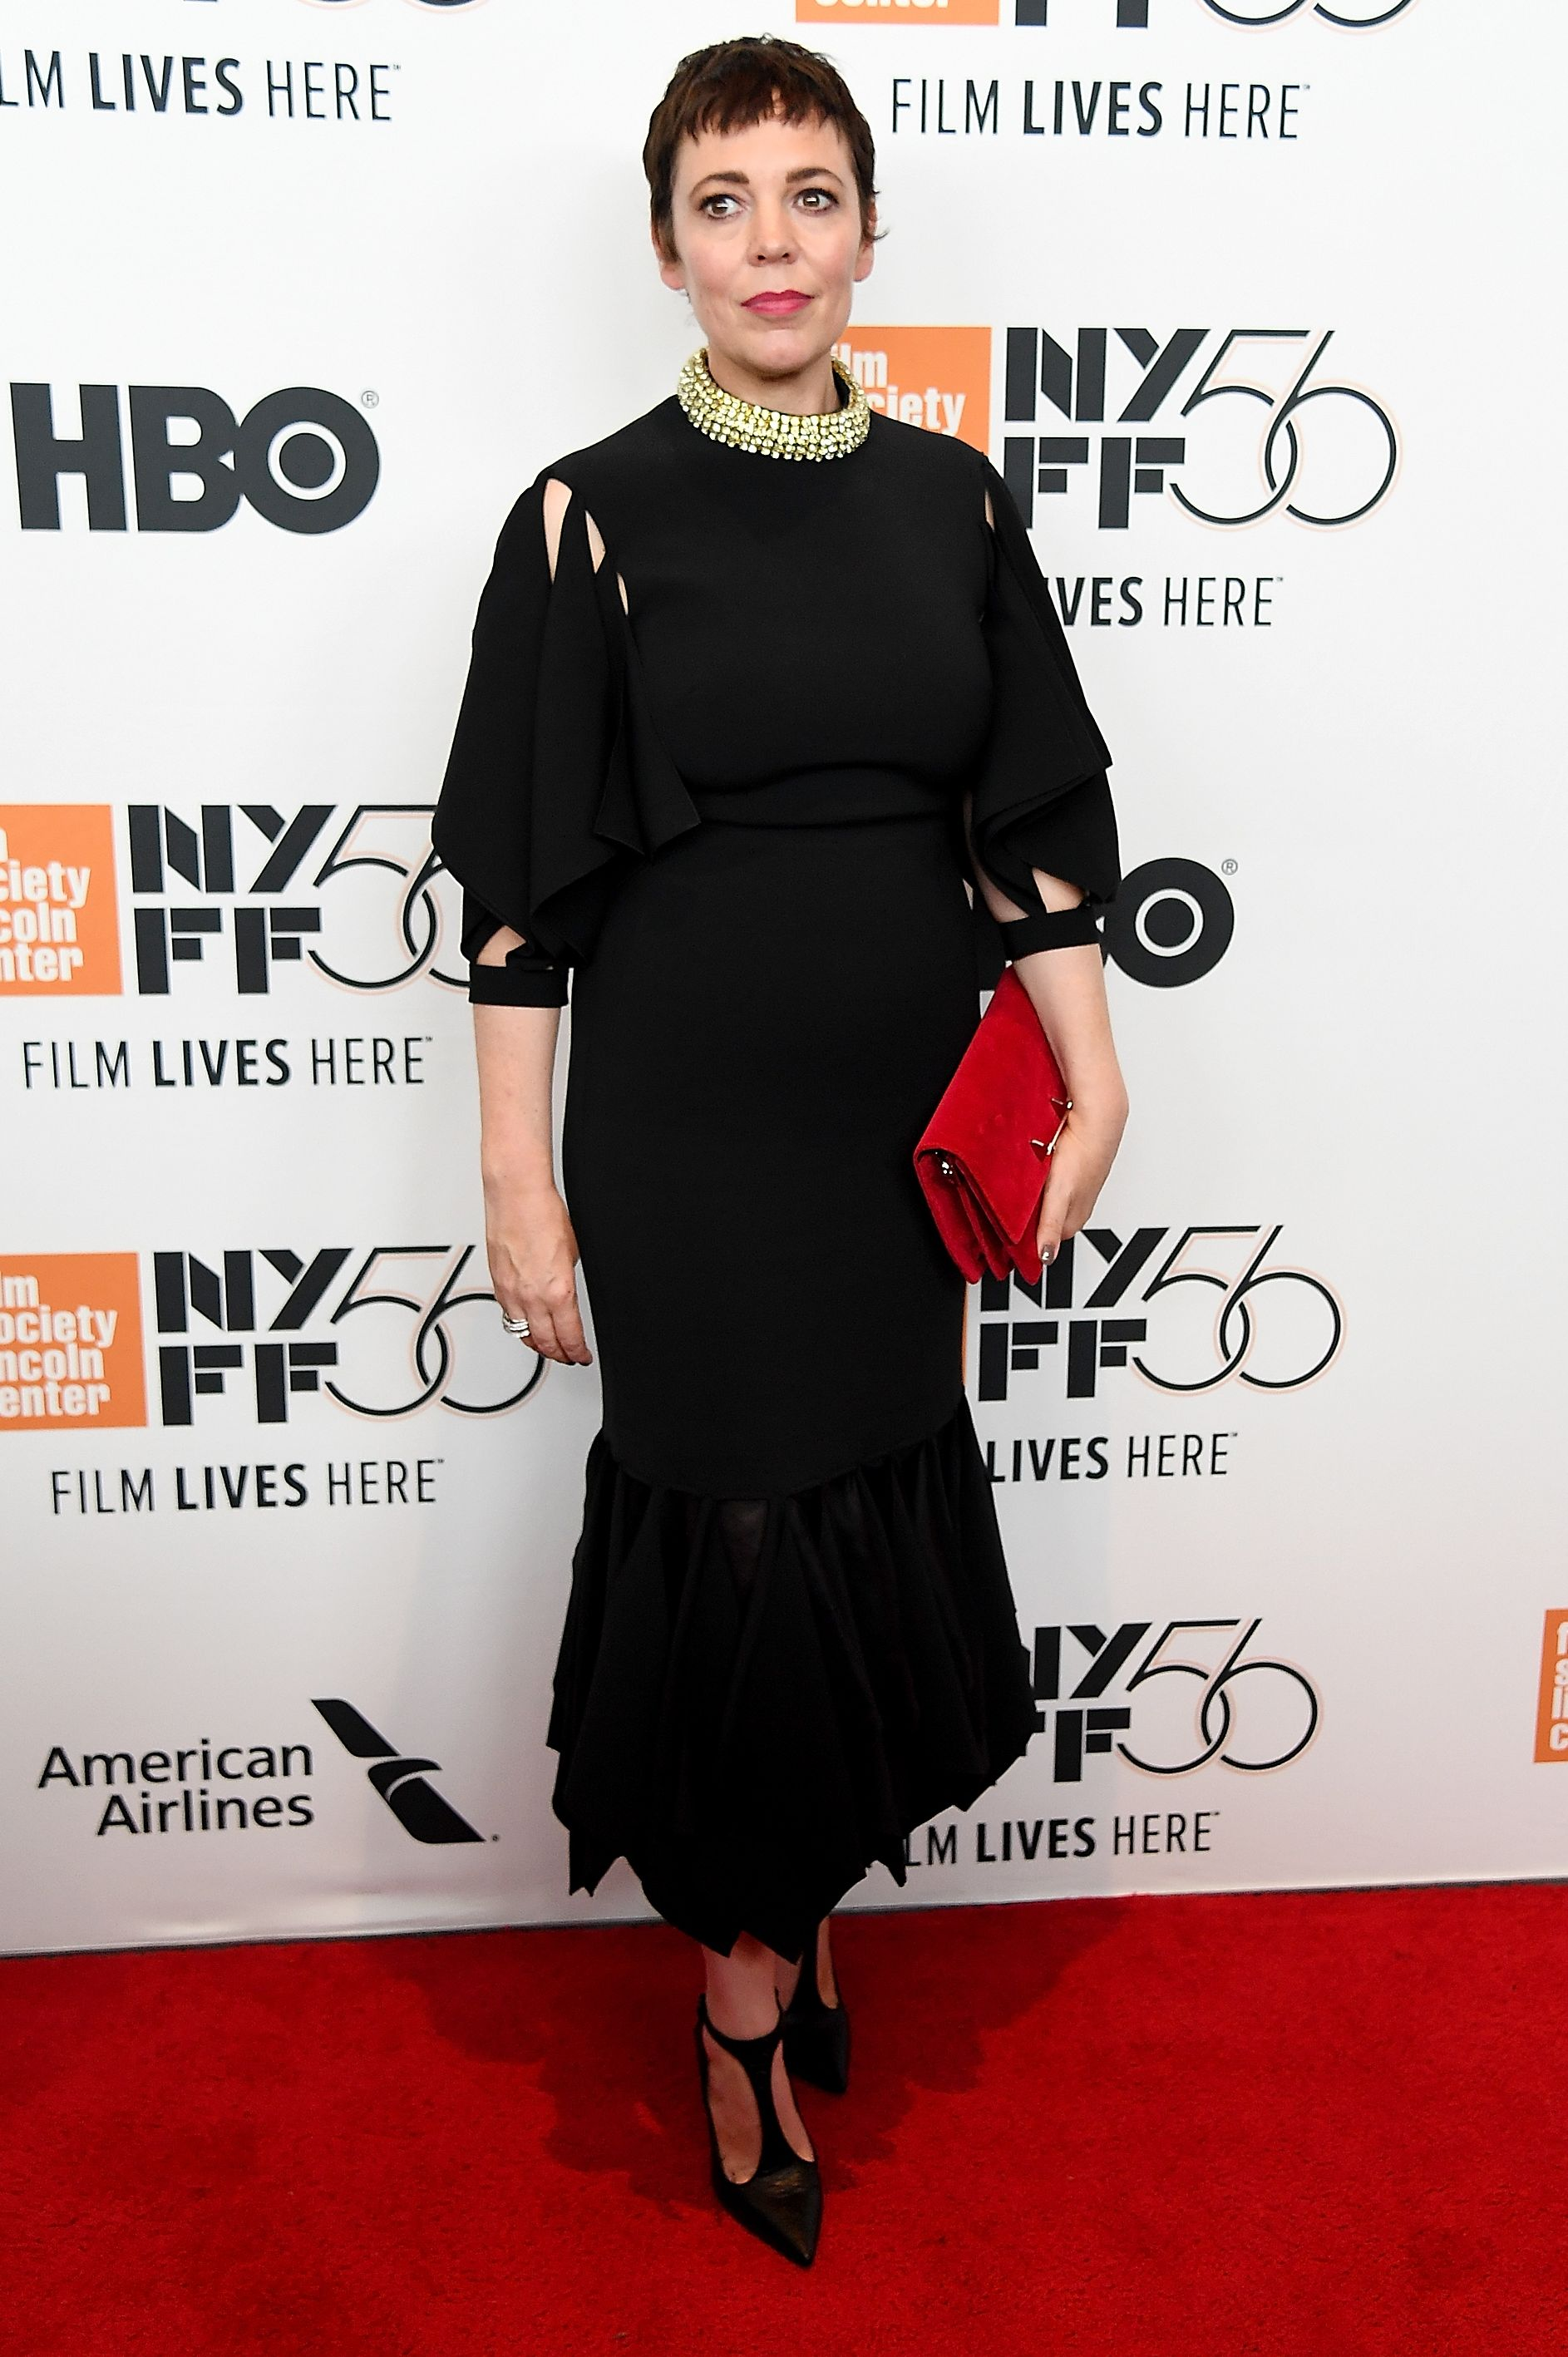 Actress Olivia Colman attended the New York Film Festival wearing a black dress with cut-out sleeves and a gold beaded collar, a red envelope clutch, and black pumps.